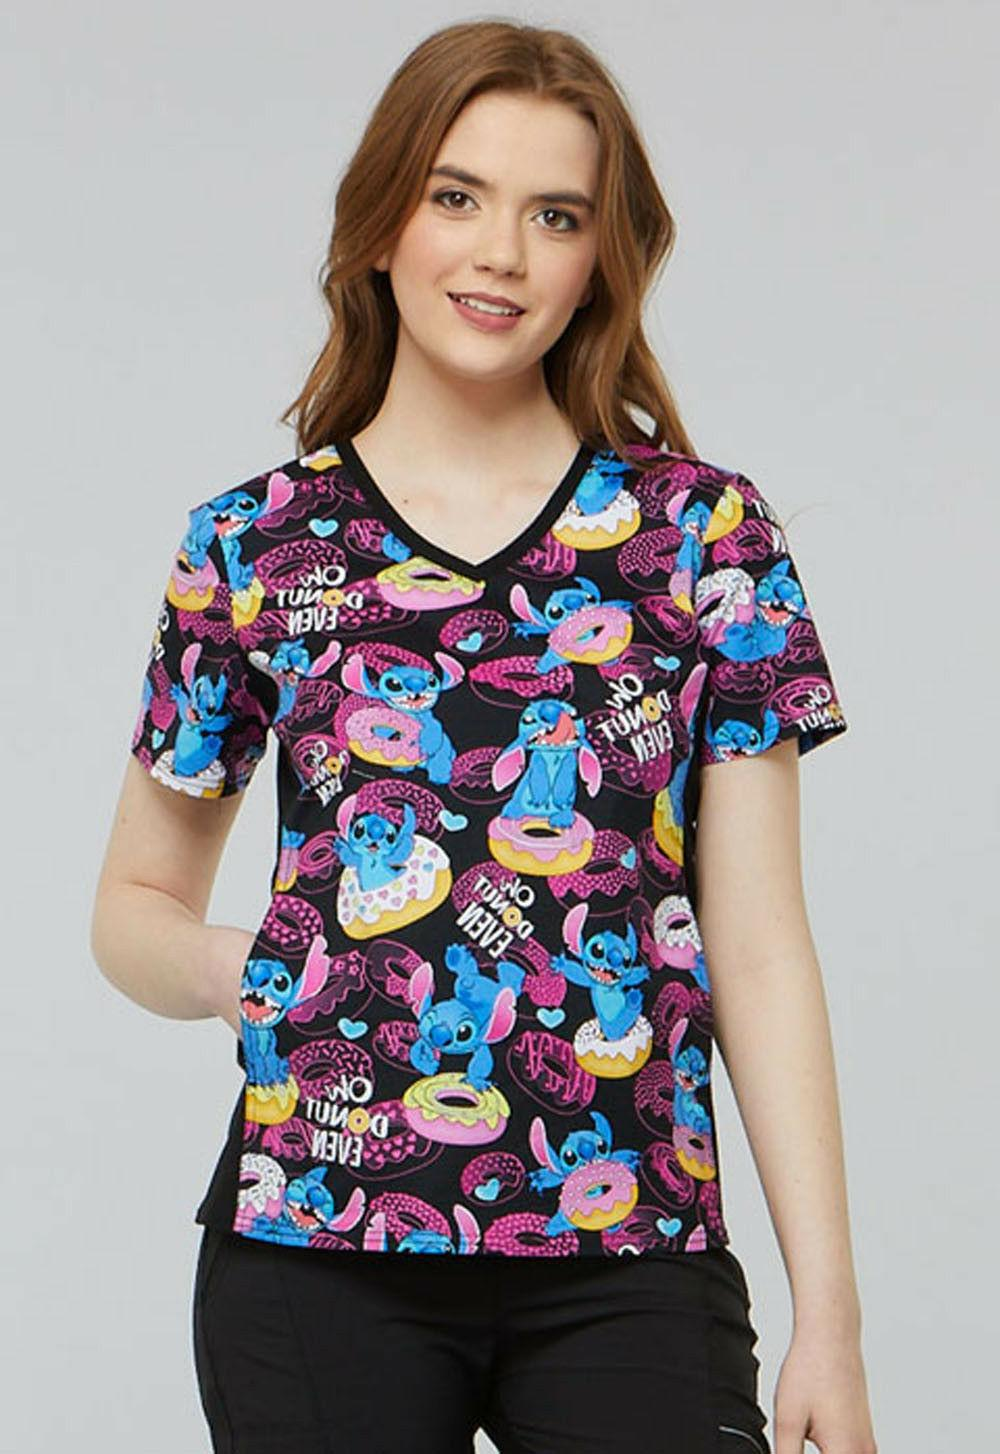 Lilo & Stitch Cherokee Scrubs Tooniforms Disney Knit Panel V